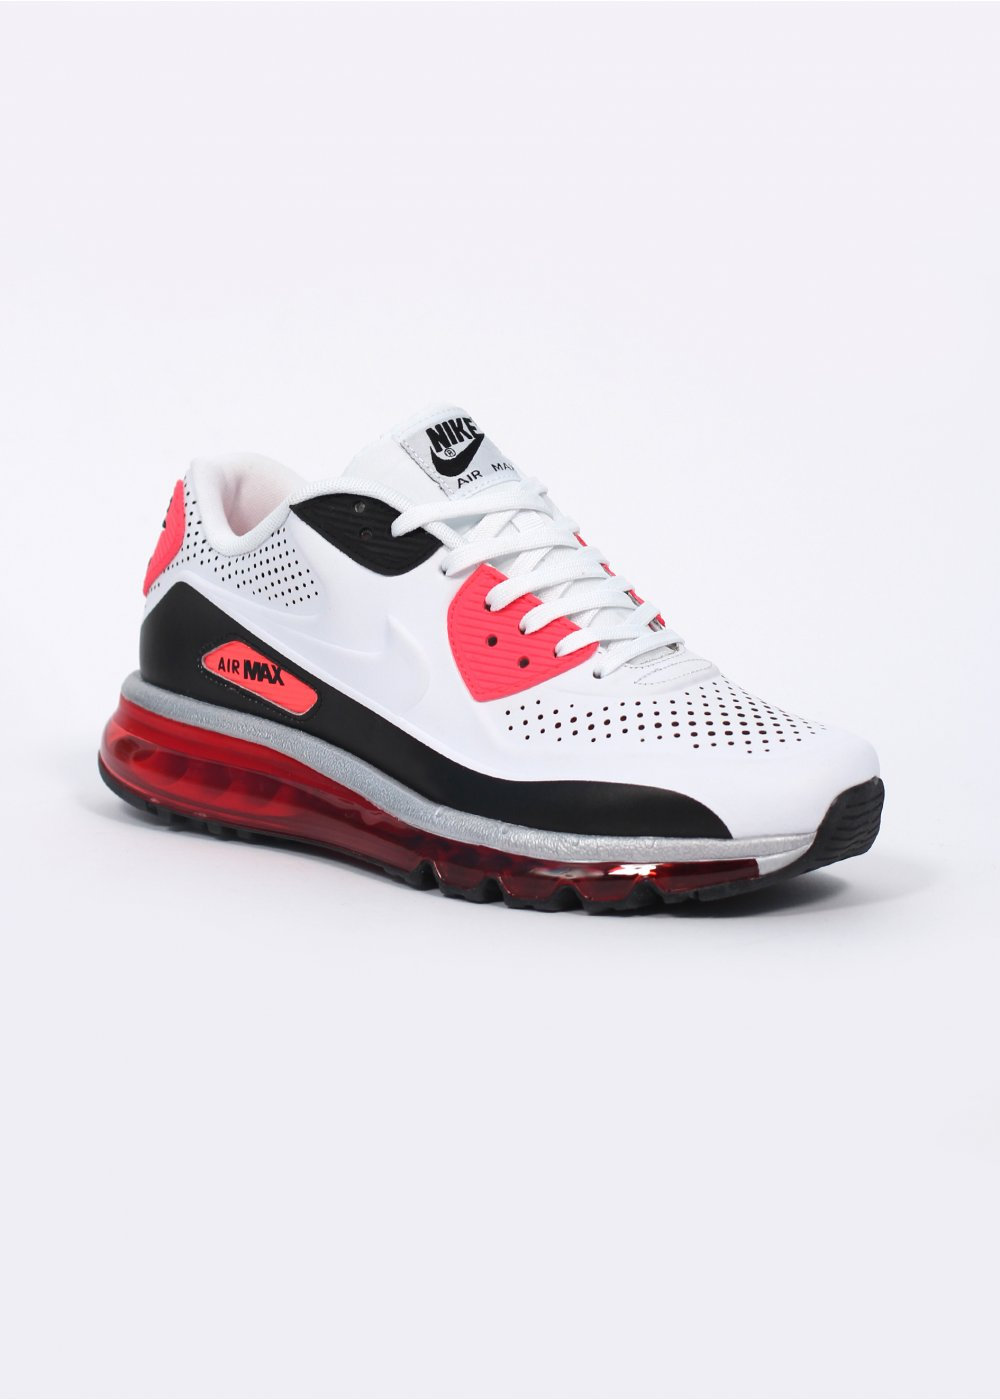 nike air max 90 2014 ltr qs trainers infrared. Black Bedroom Furniture Sets. Home Design Ideas